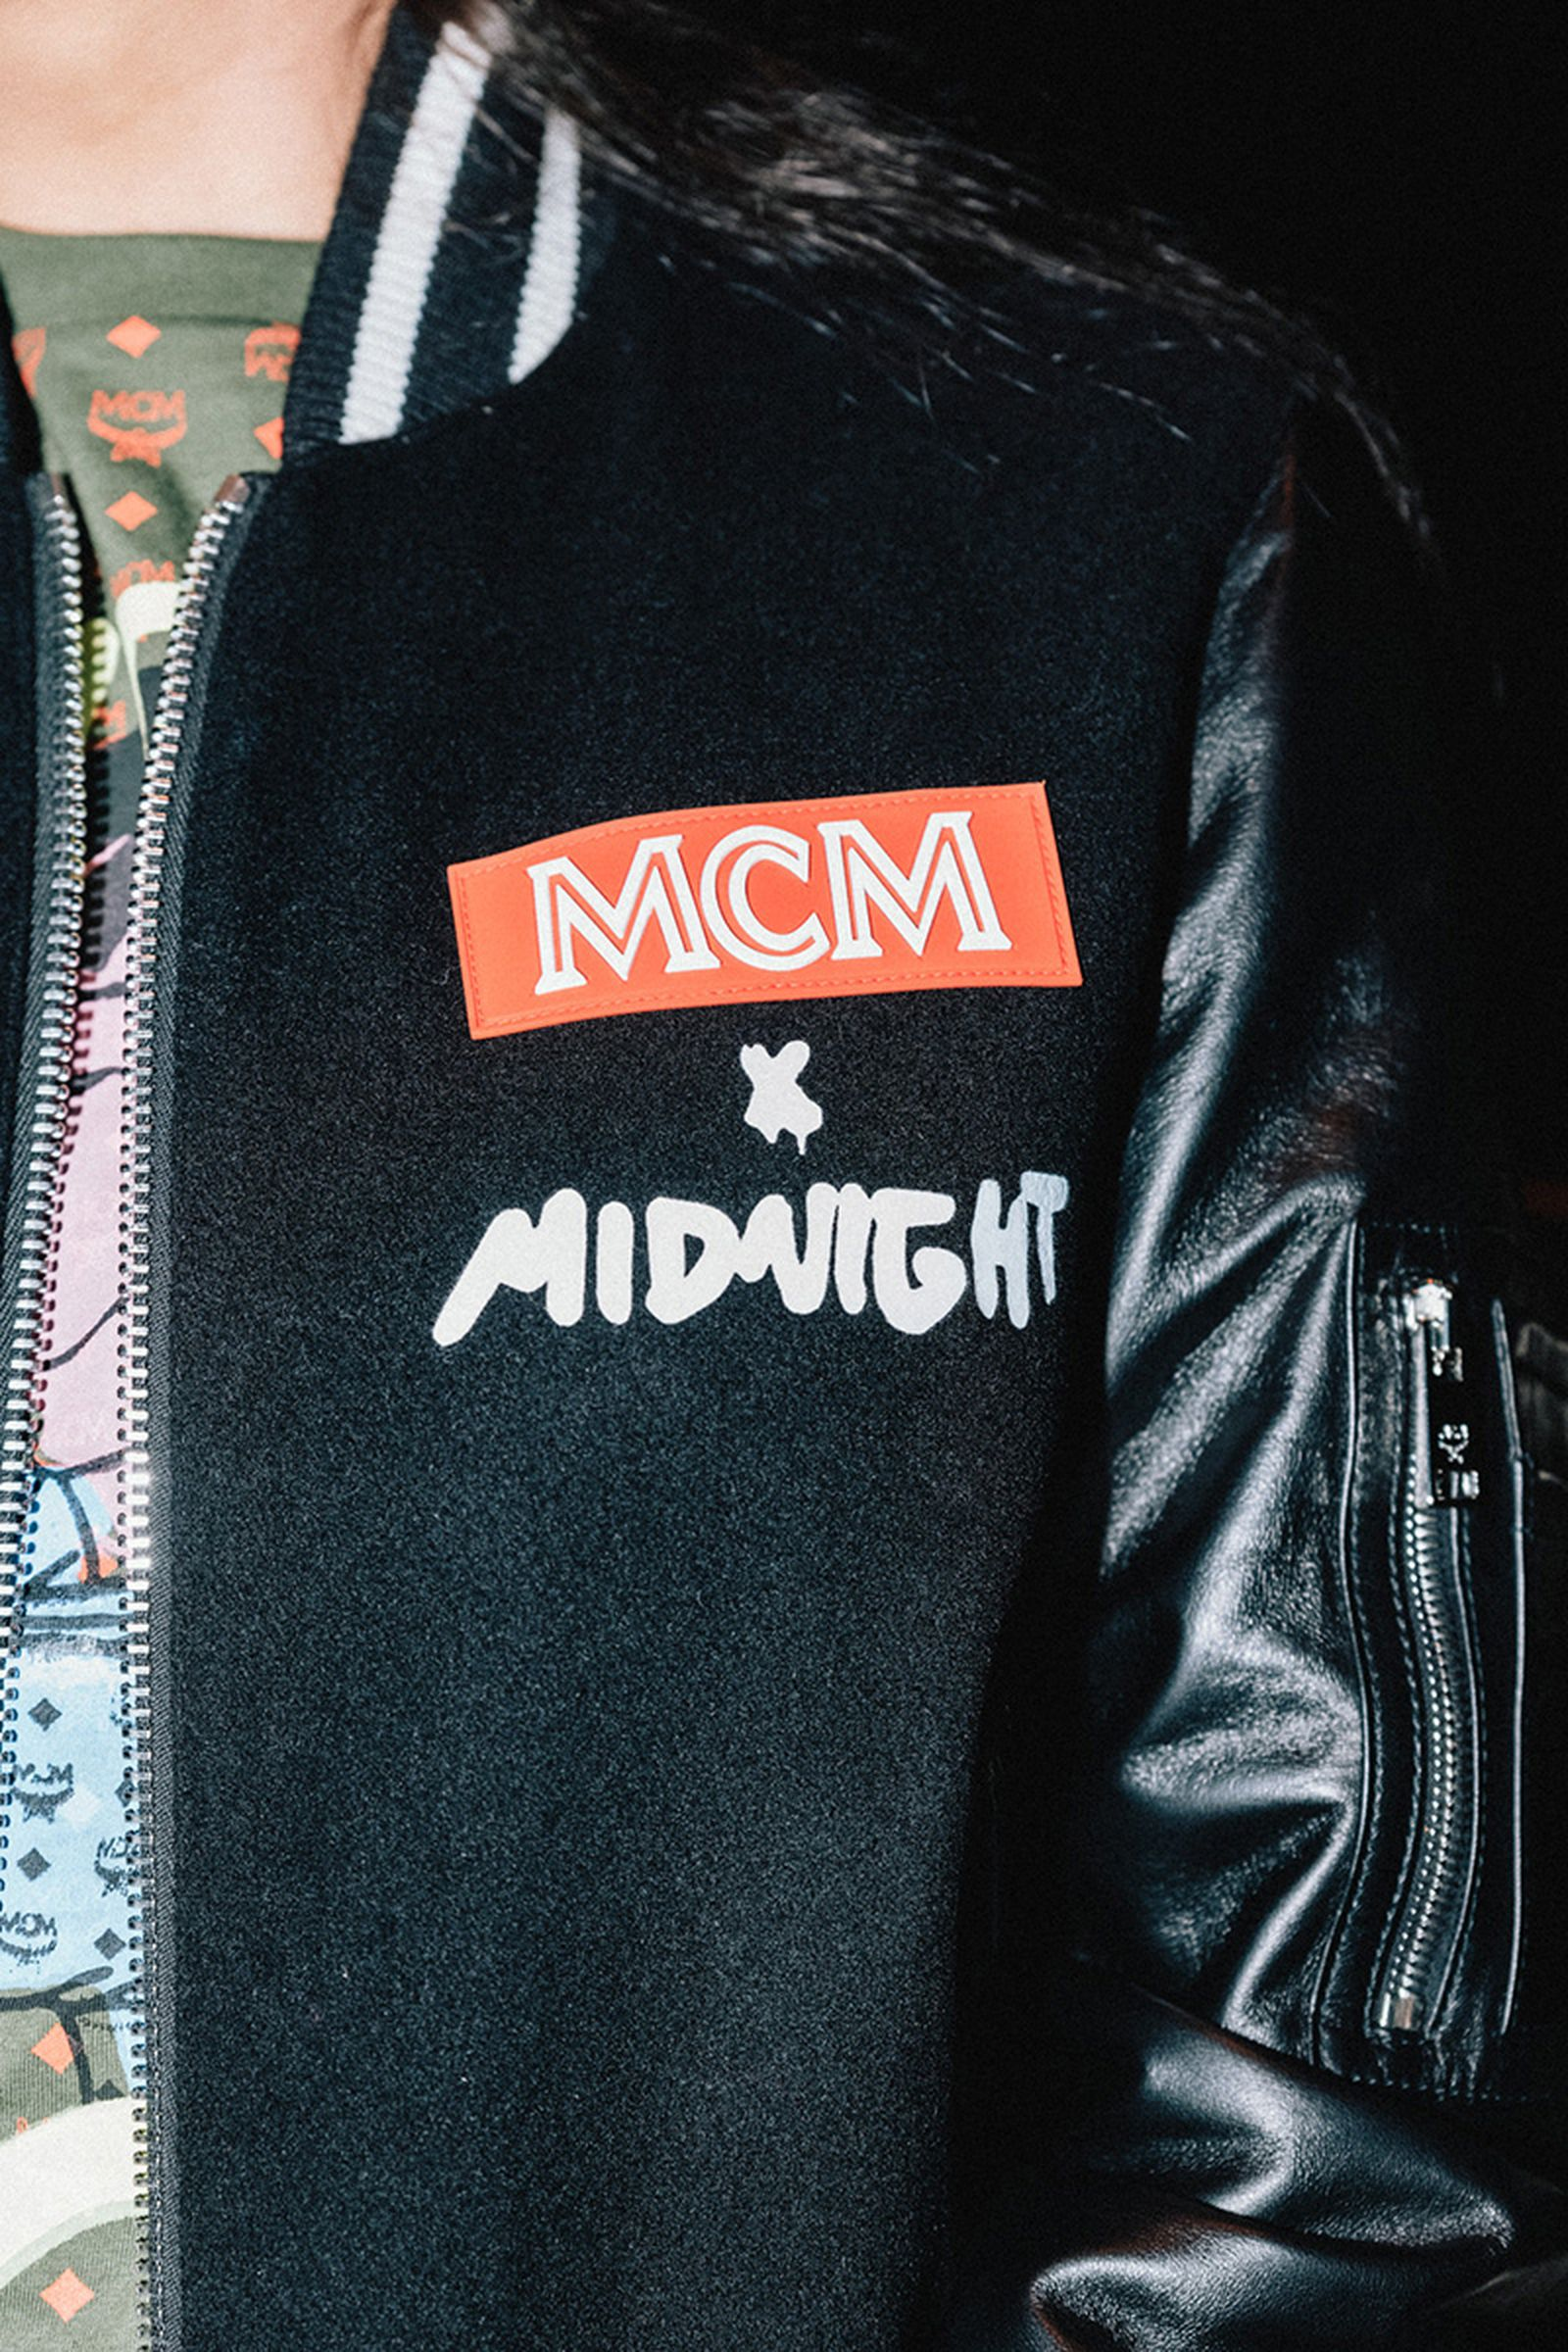 mcm-launches-global-content-partnership-with-midnight-leading-the-pack-04